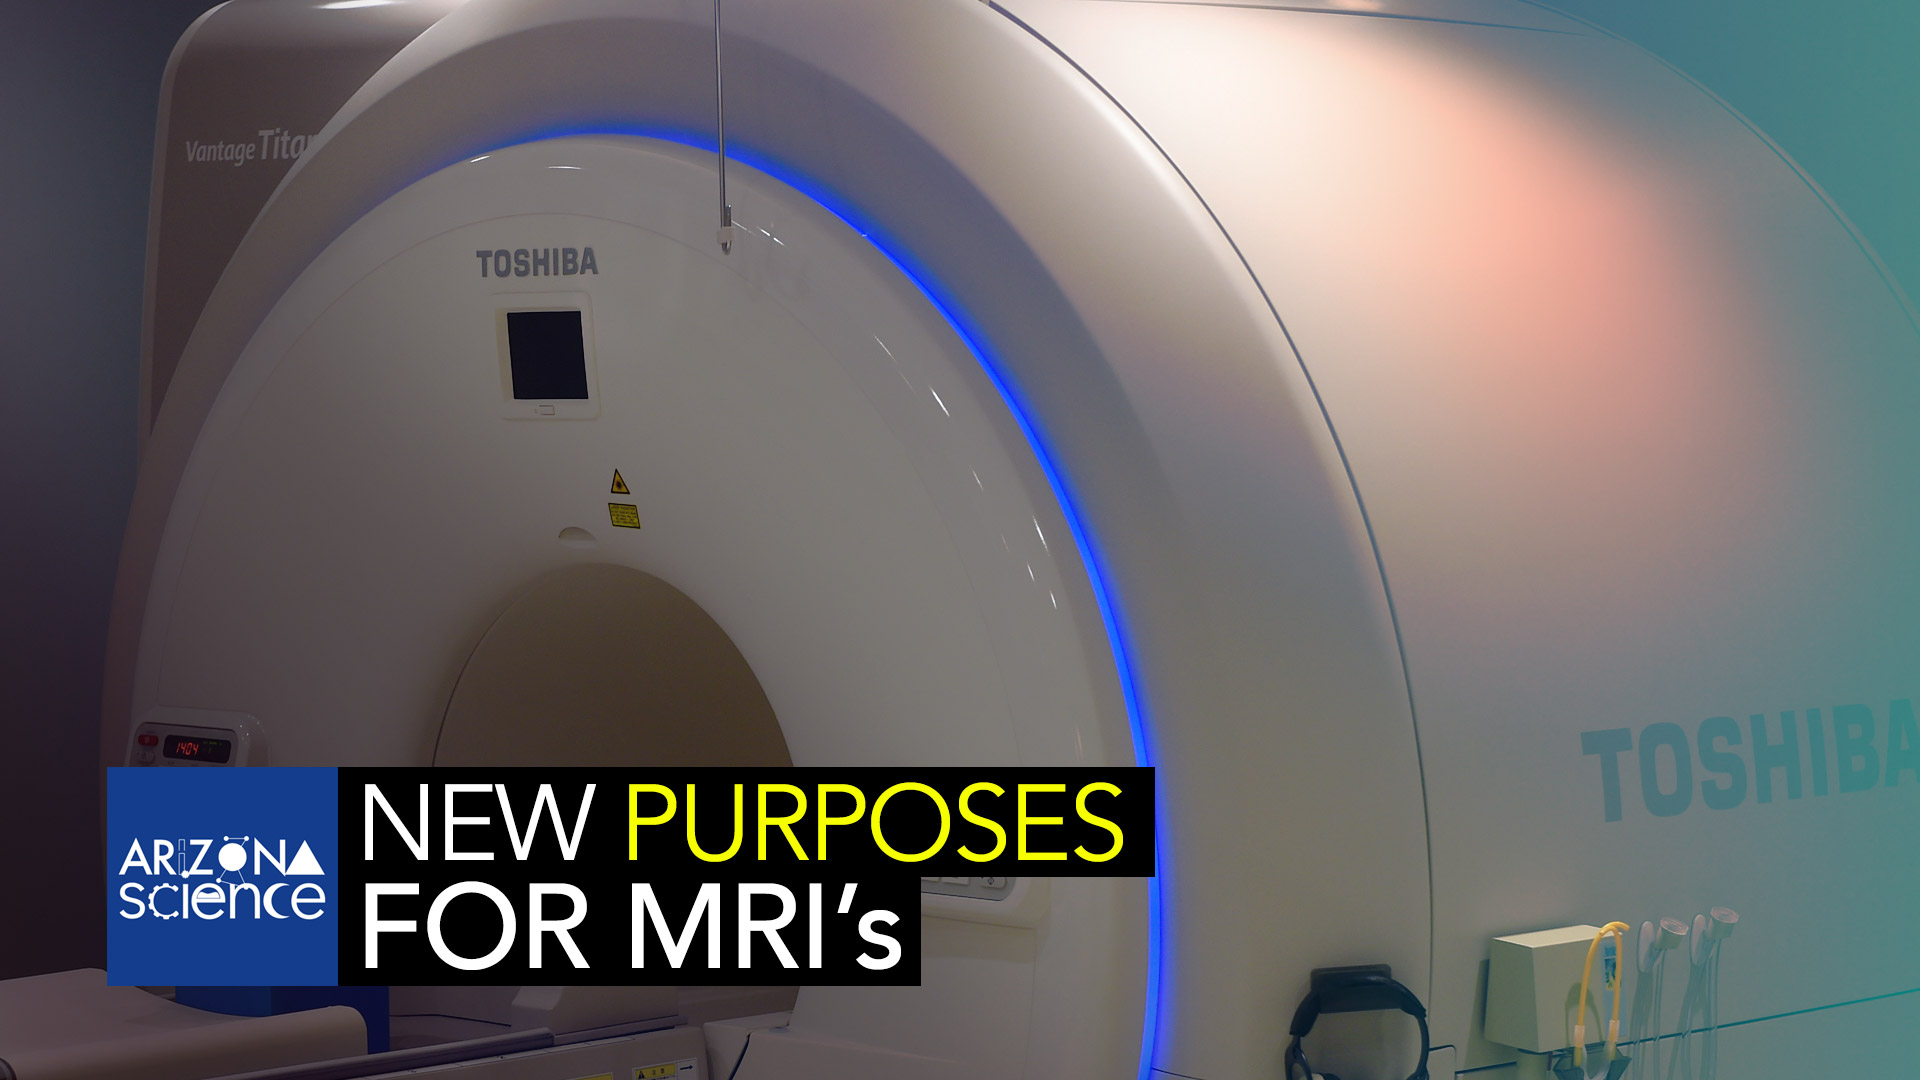 An MRI machine at Joint Base Langley-Eustis, VA